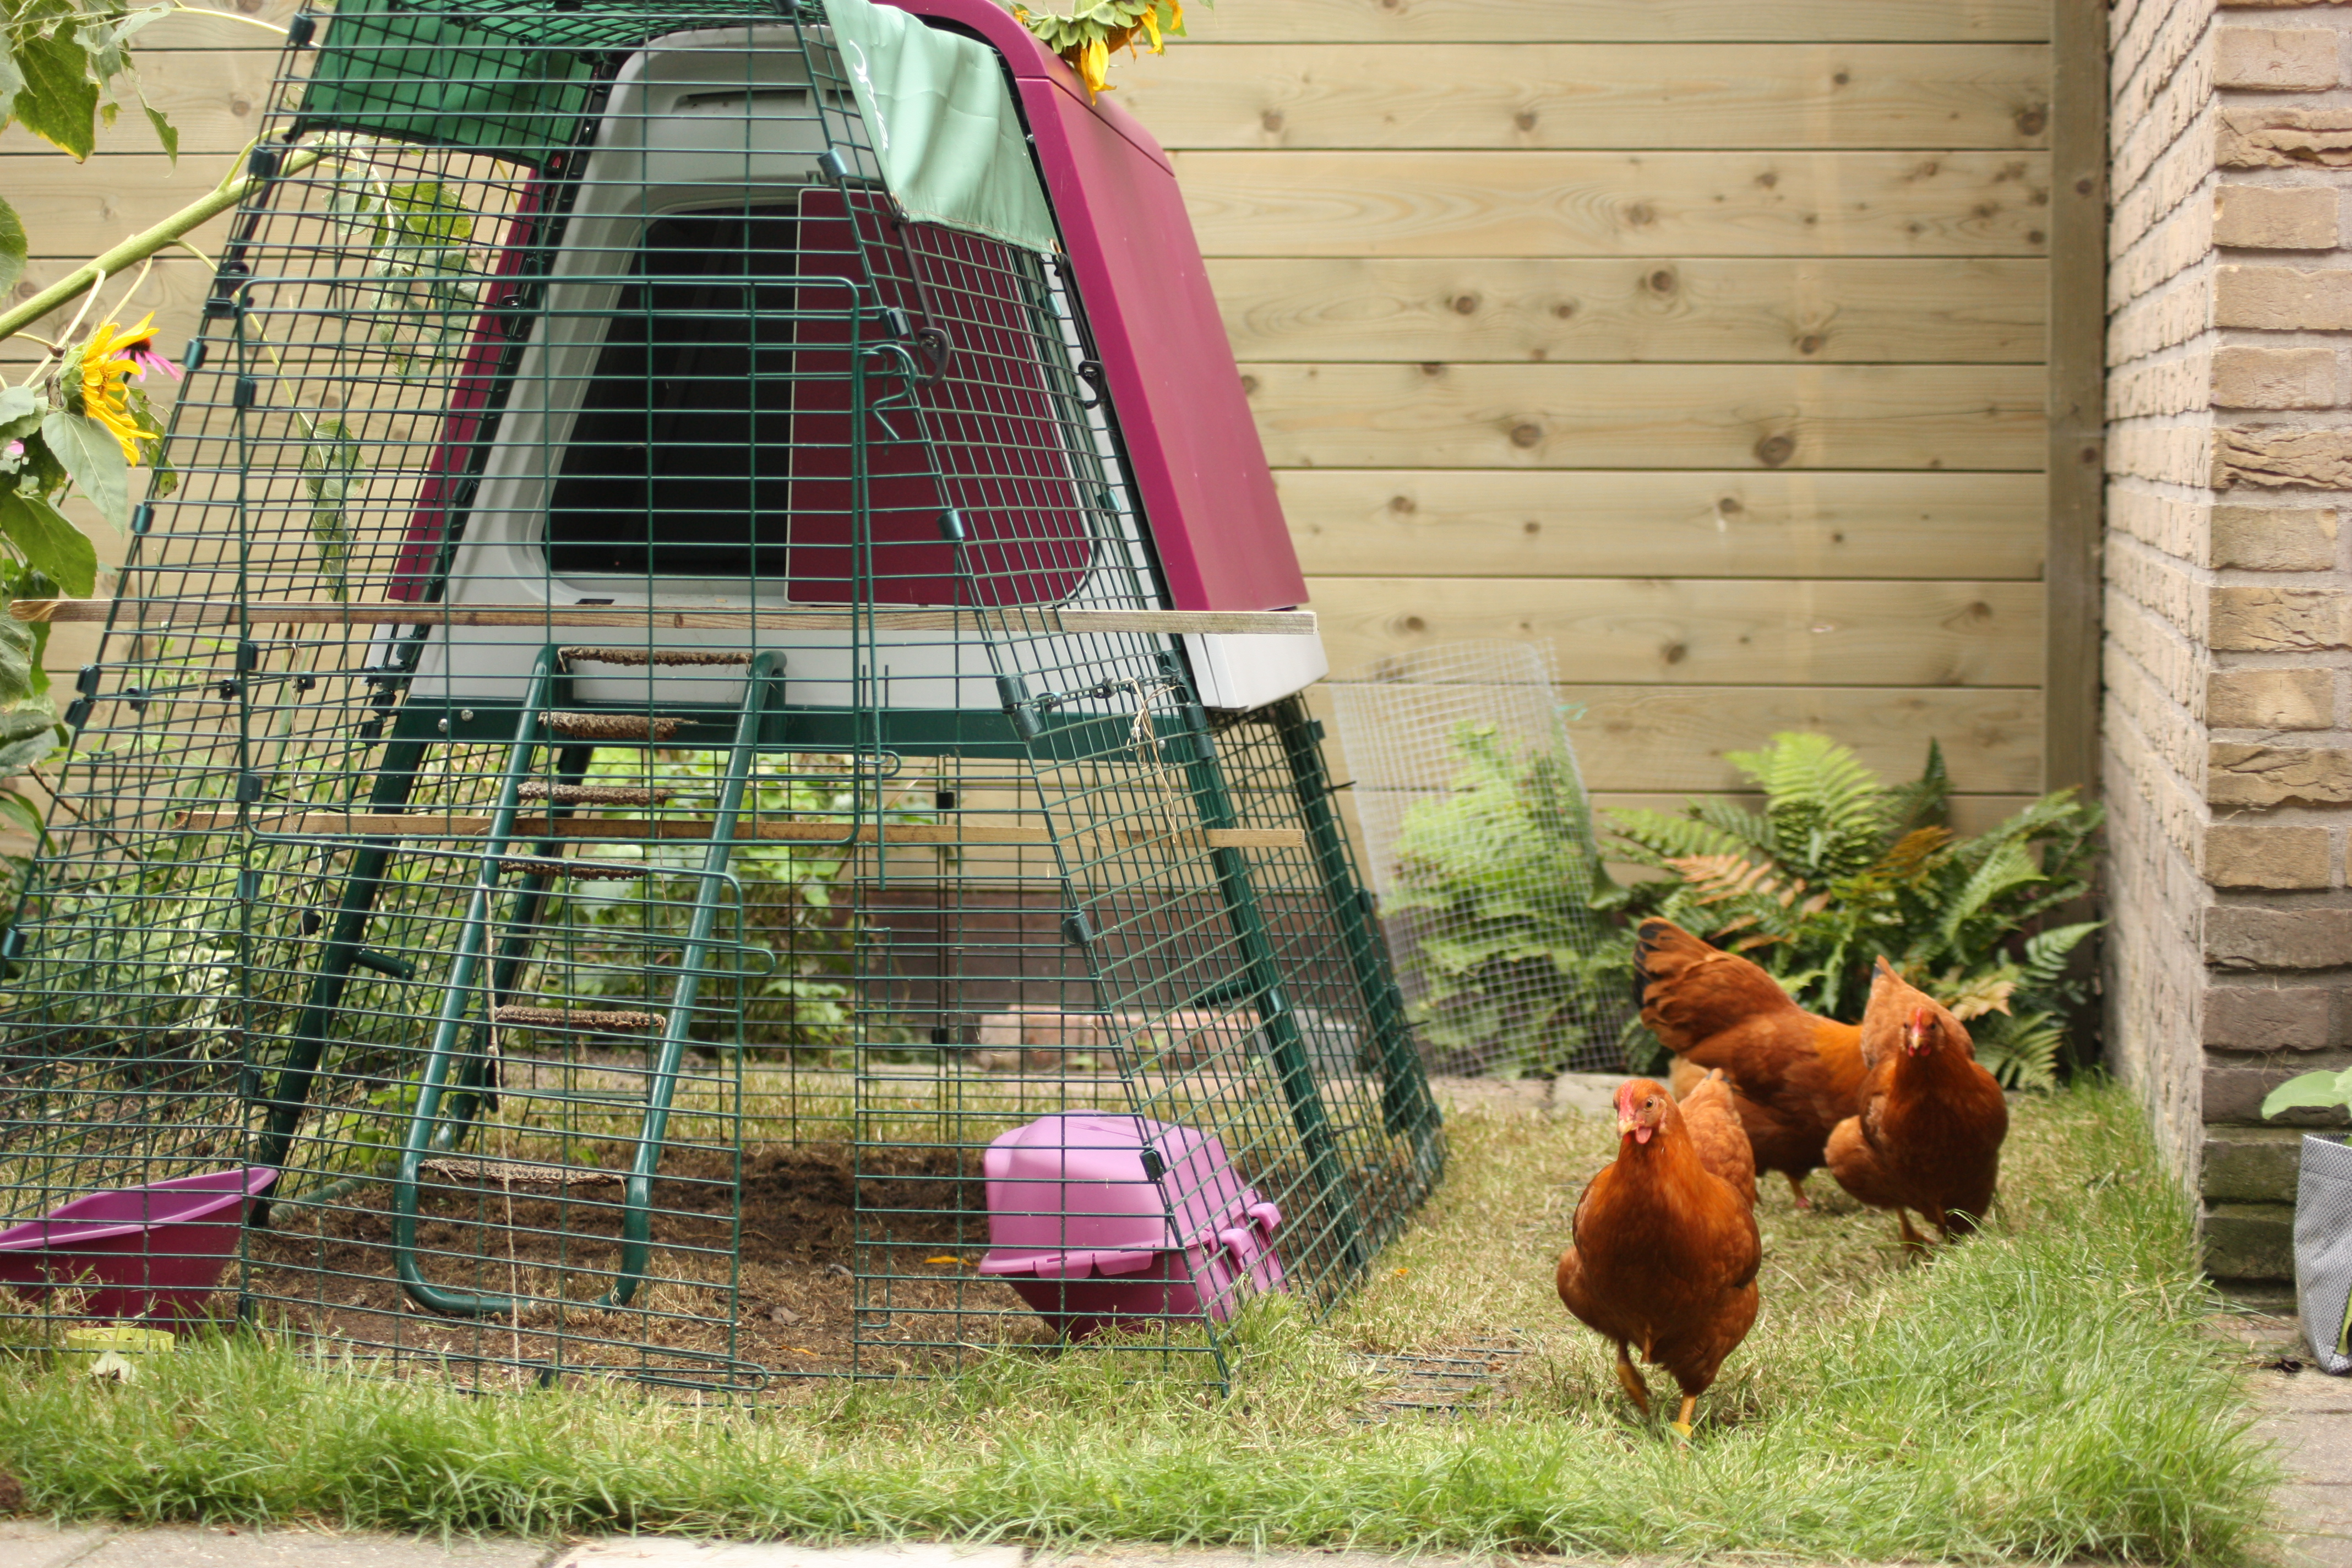 Pauline Snel's hens love to free ranging in her garden